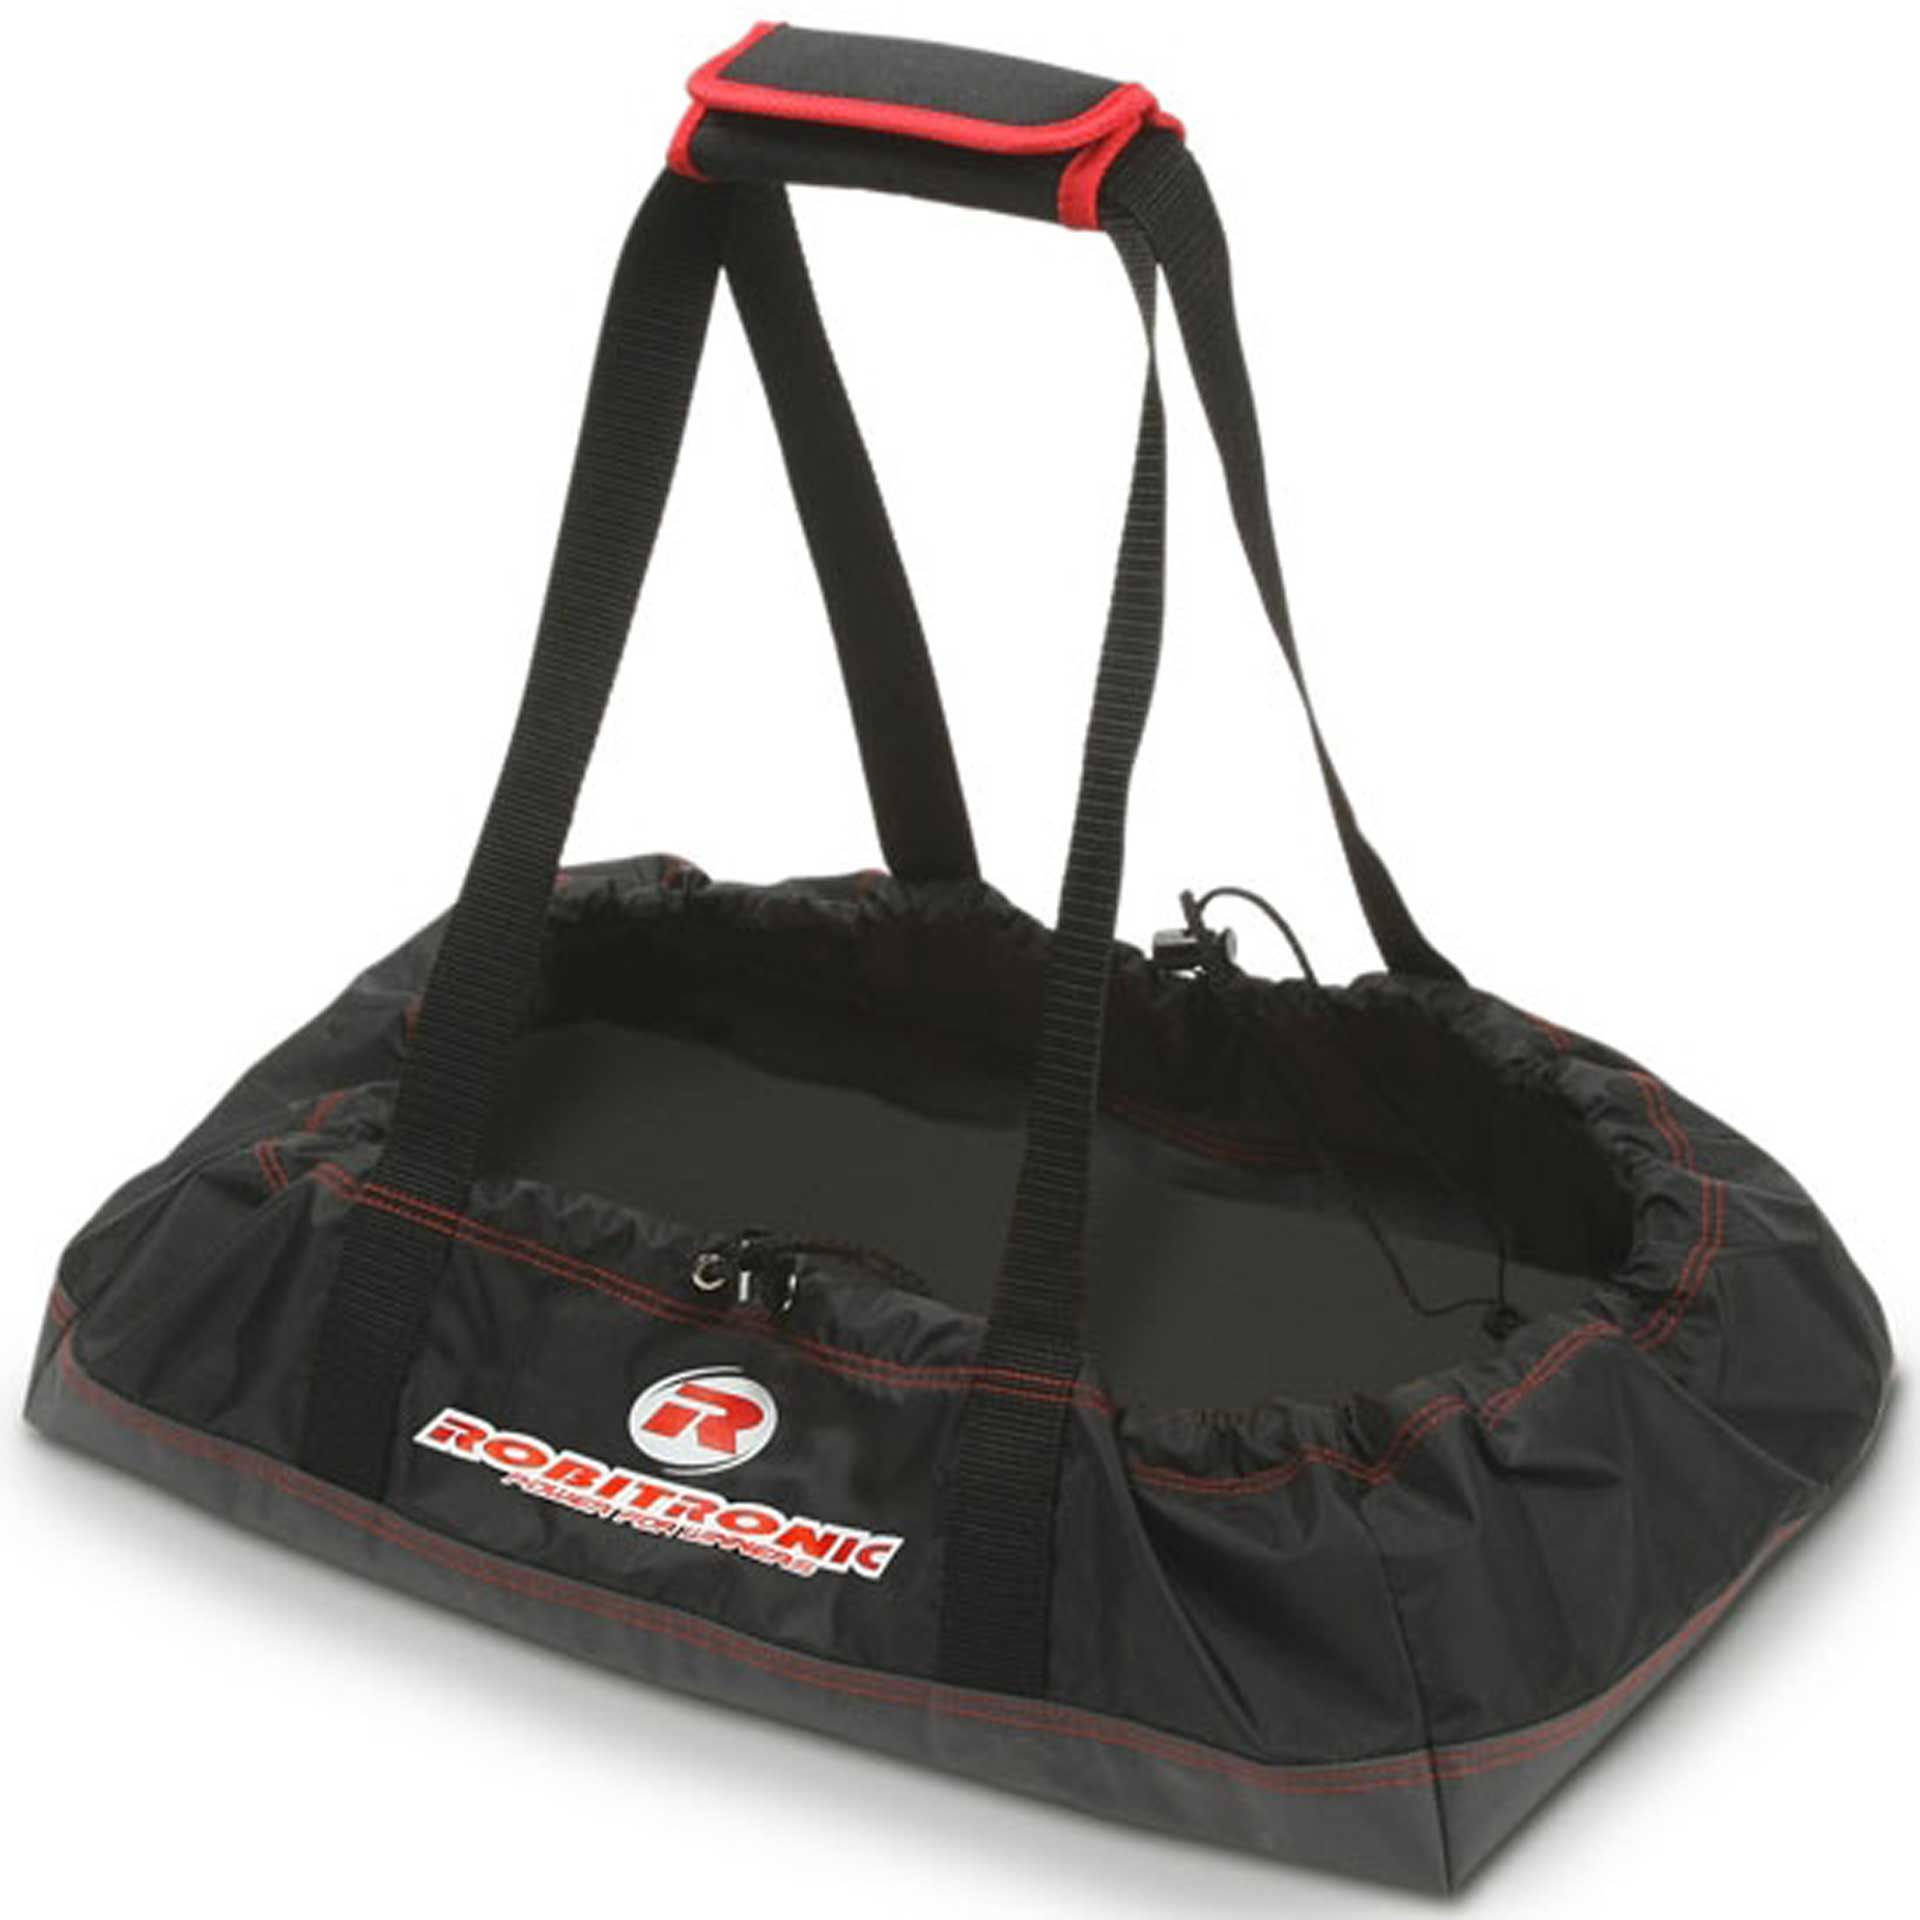 ROBITRONIC Dirtbag carrying bag for 1/8 buggy